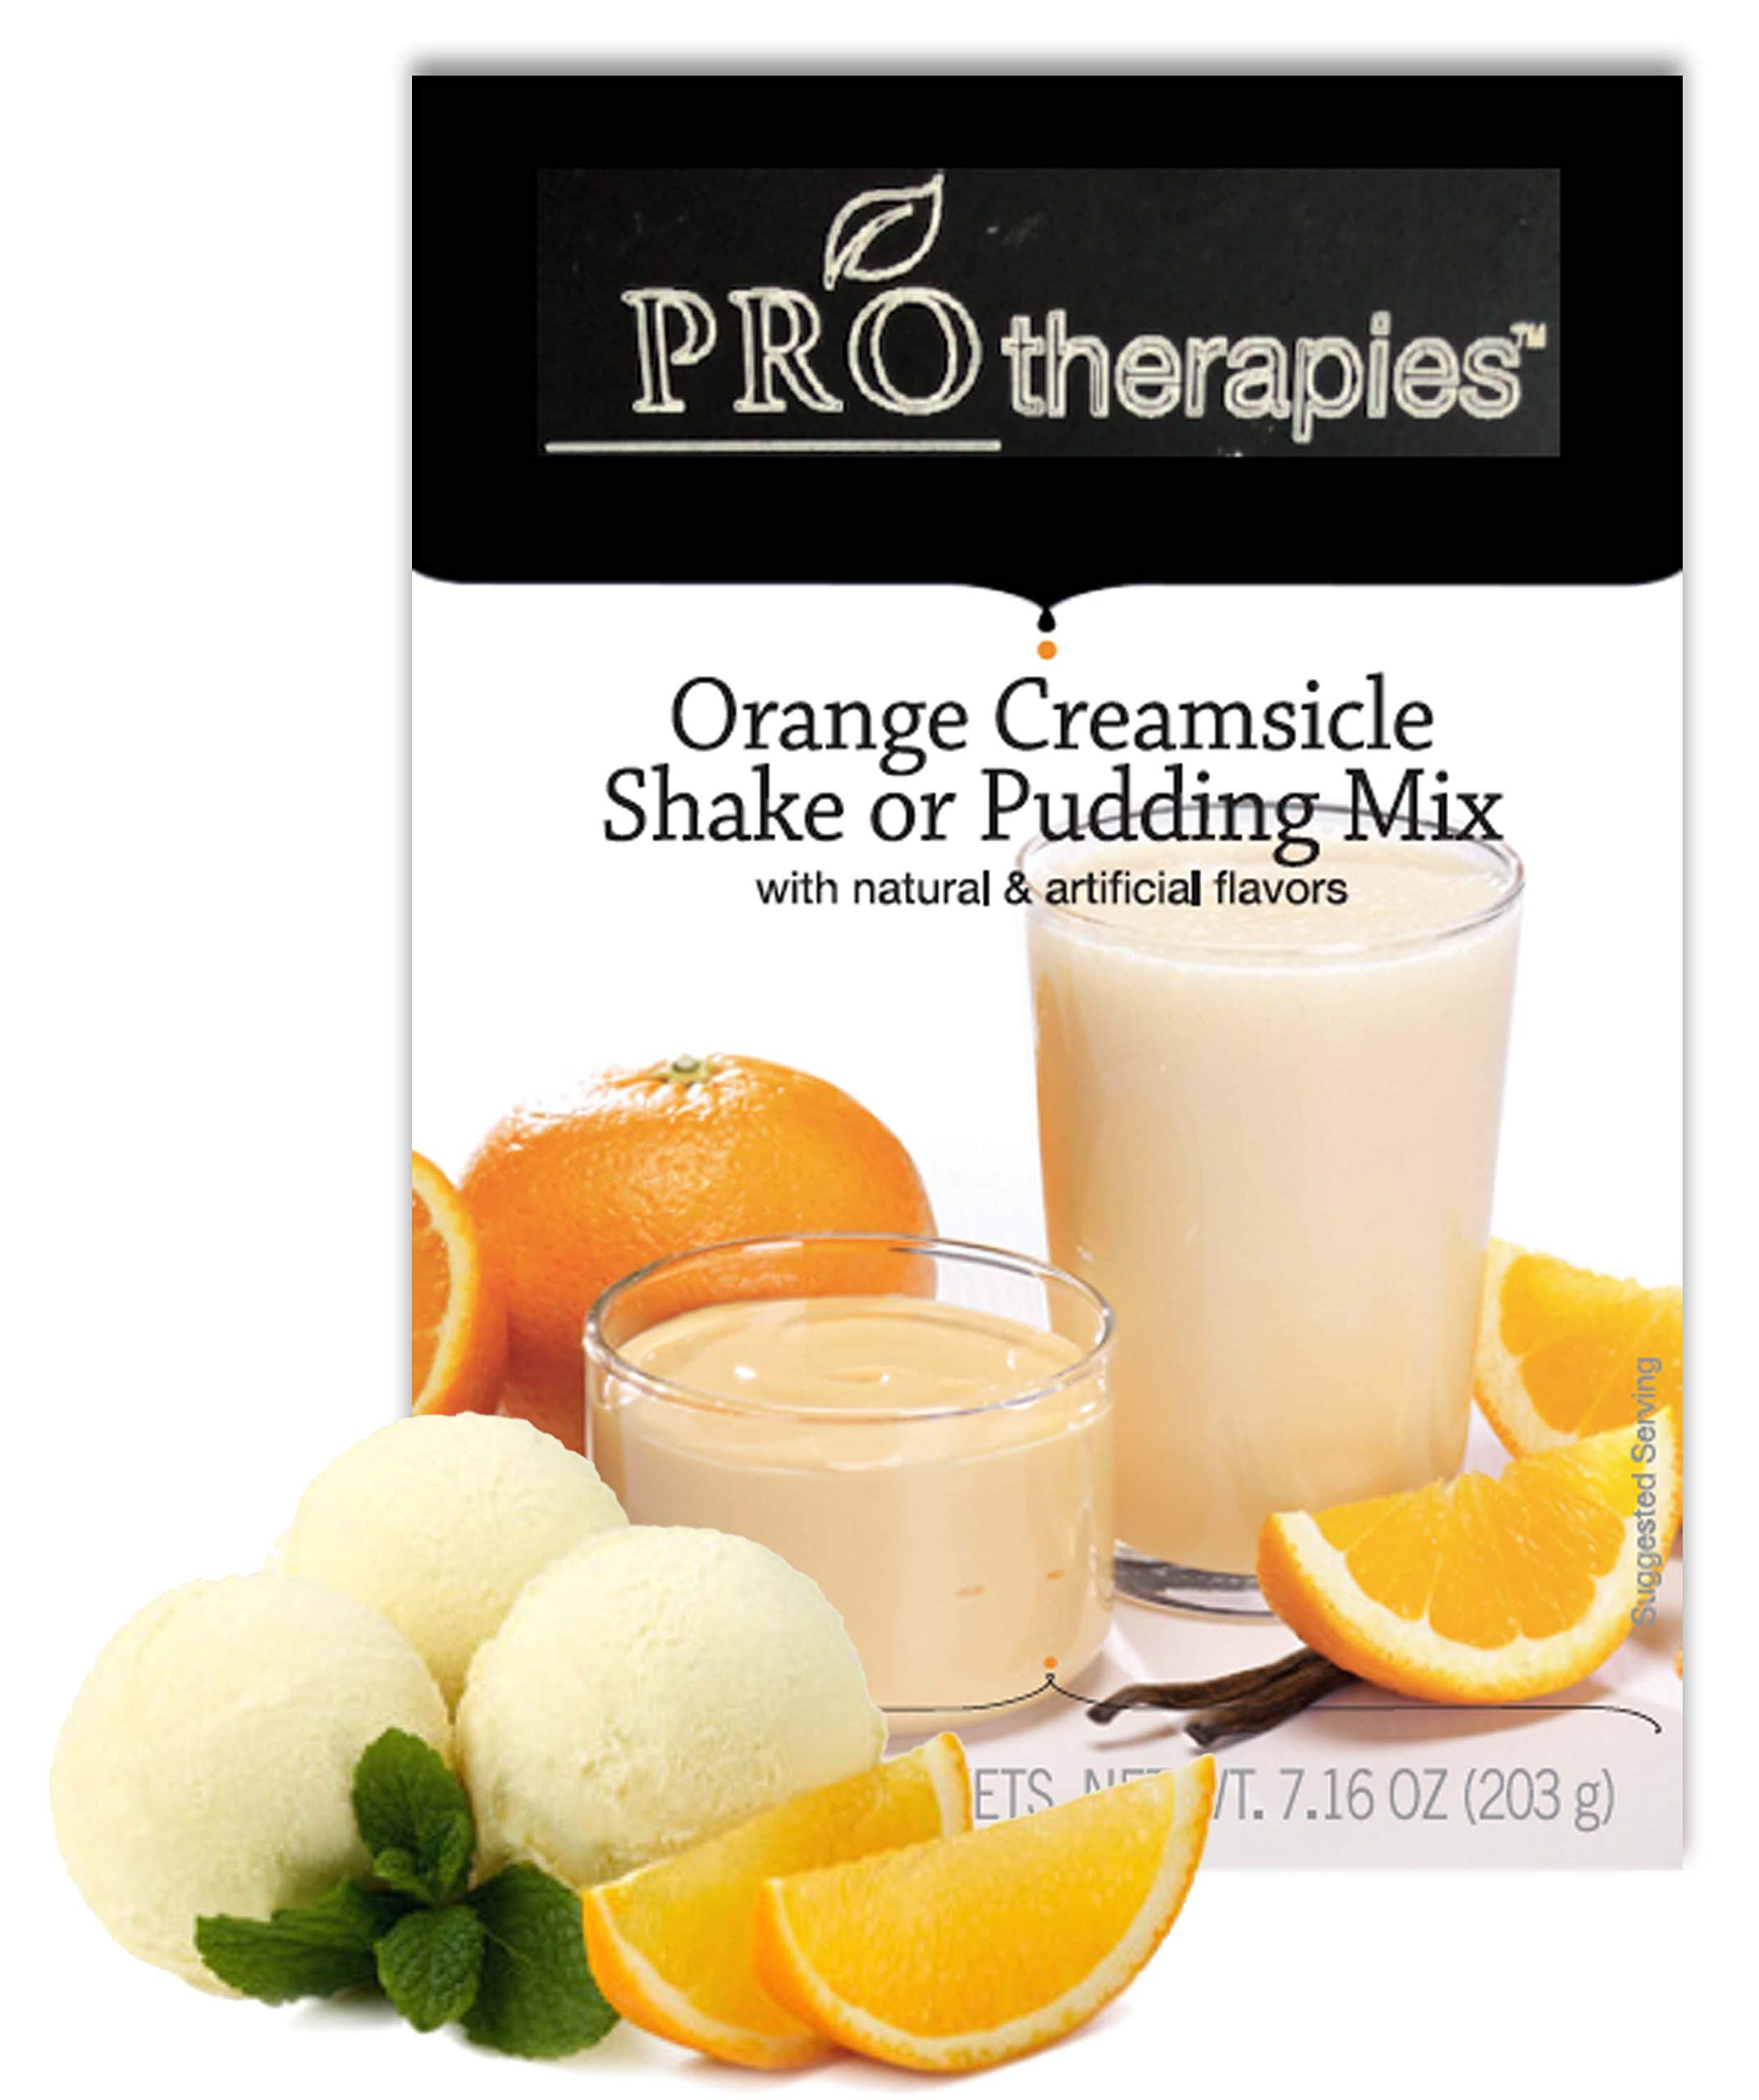 High Protein Pudding Mix - Orange Creamsicle Low-Carb Instant Diet Pudding Mix, Low Calorie Weight Loss Shake/Pudding, 7 Count